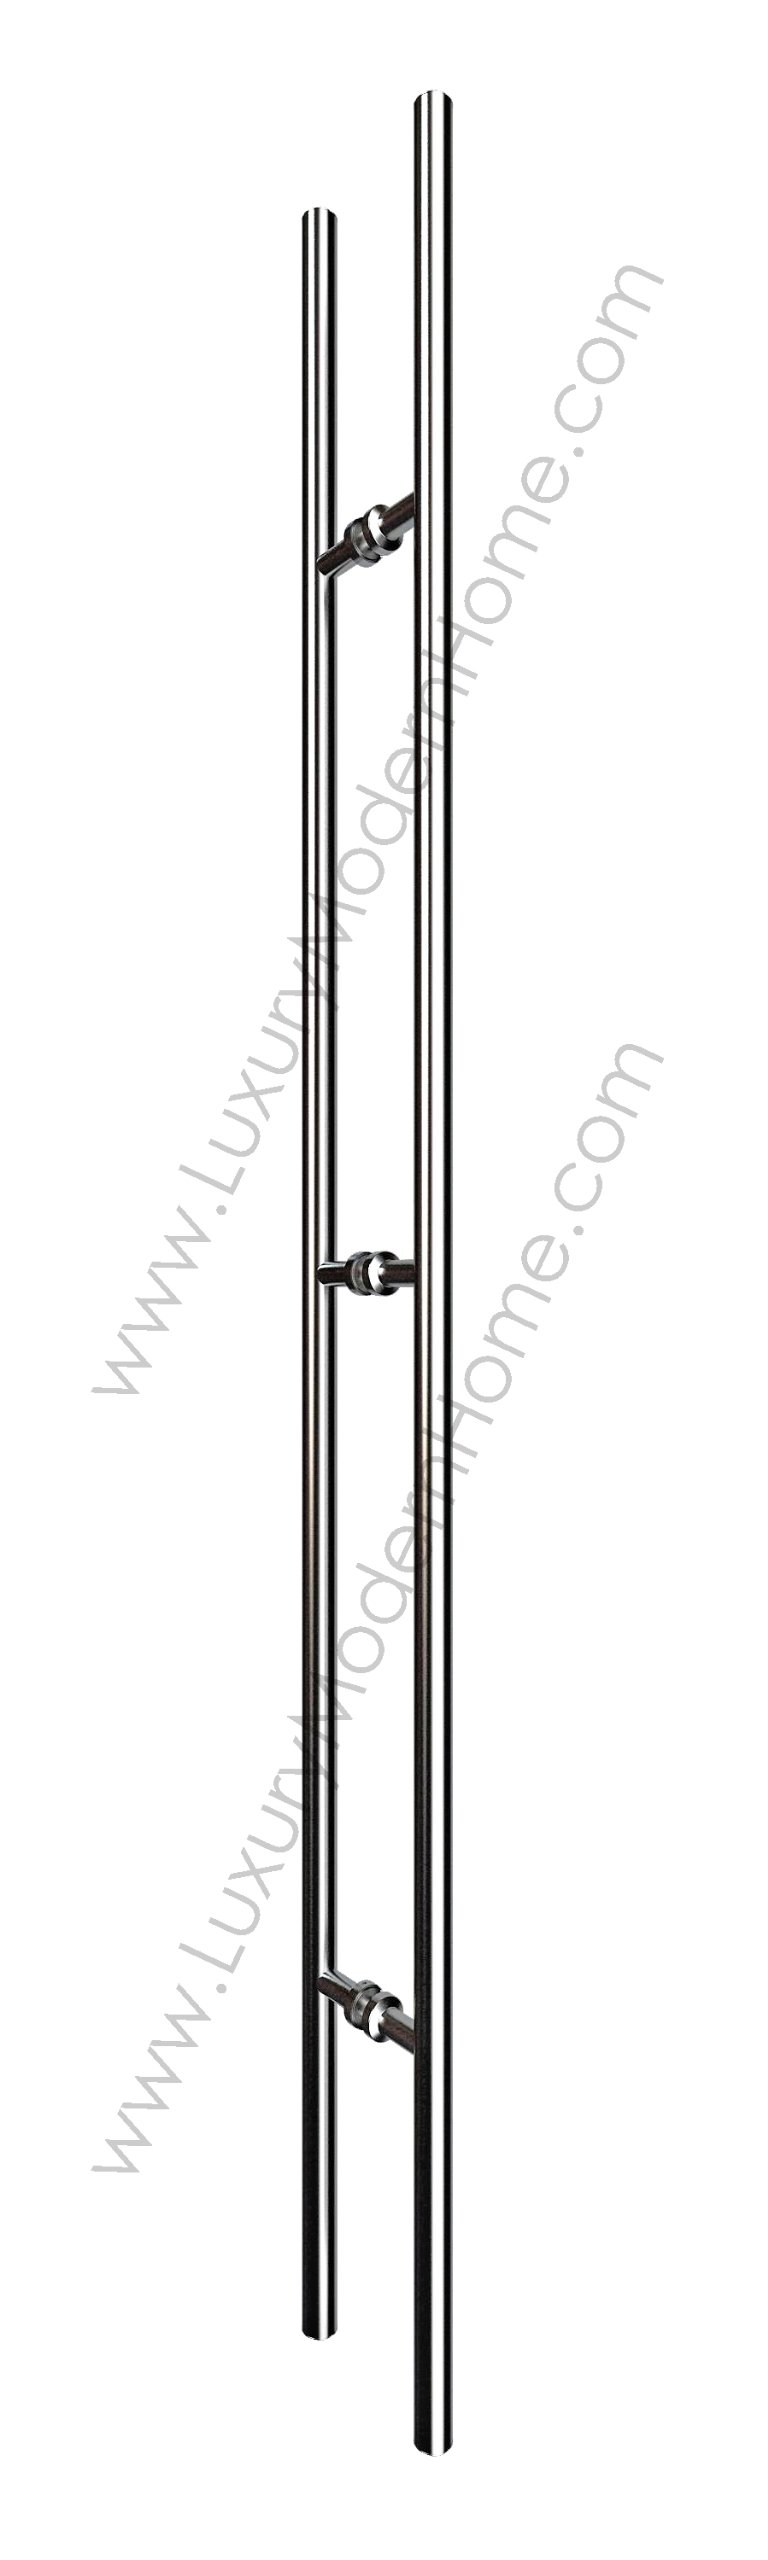 dh 60'' Ladder Style Pull Shower Handle - Wood Glass Door Stainless Steel 304 Modern Contemporary